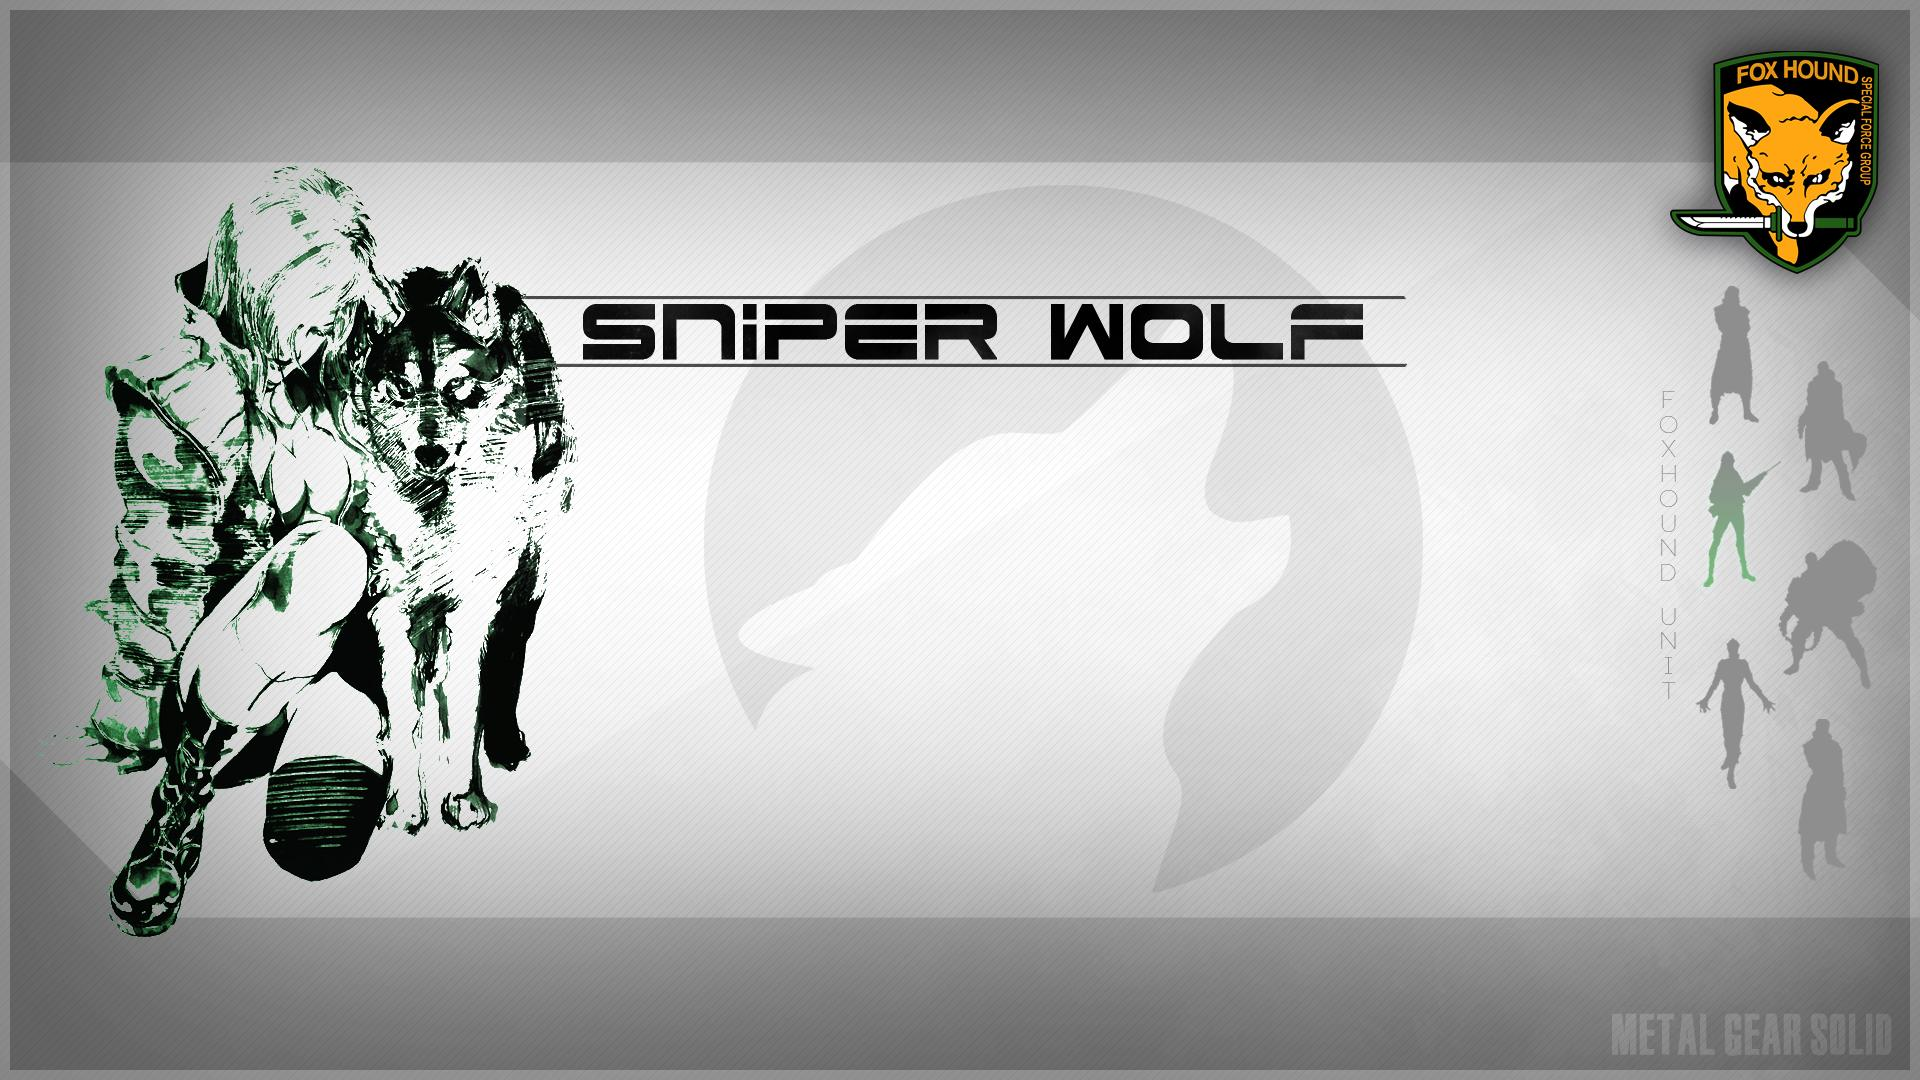 Metal Gear Solid Iphone Wallpaper Sniper Wolf Hd Wallpaper Background Image 1920x1080